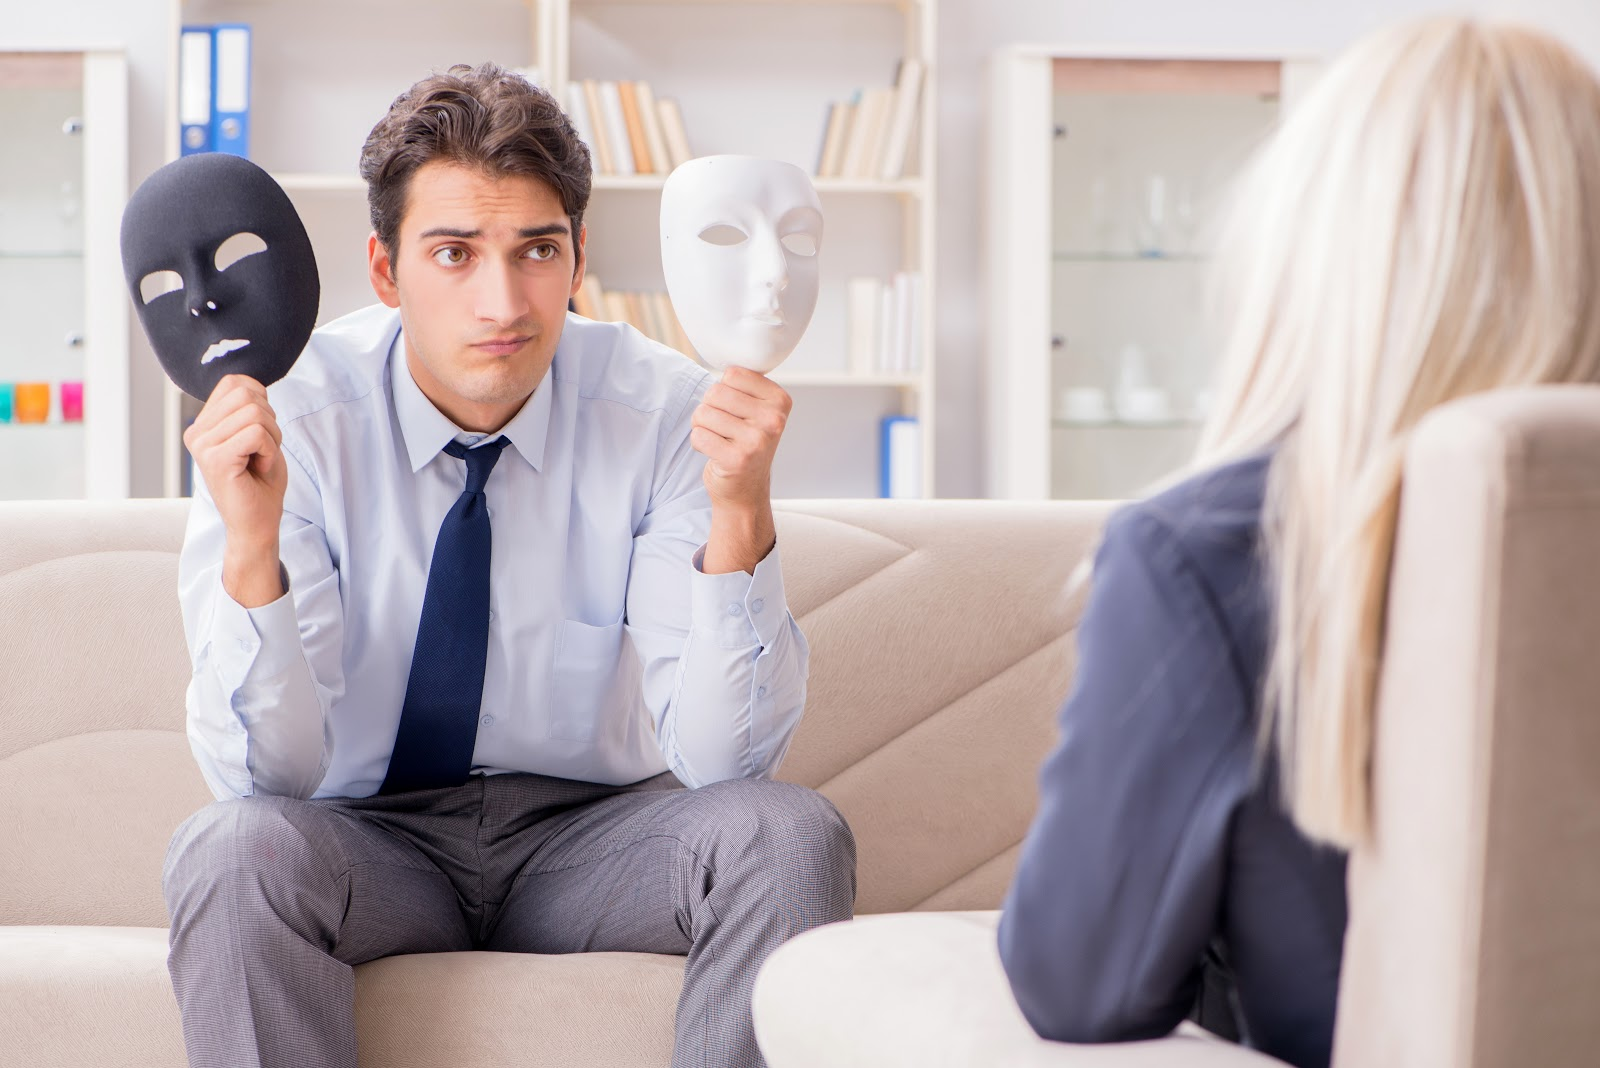 A man in therapy holding two masks, trying to deal with a crisis